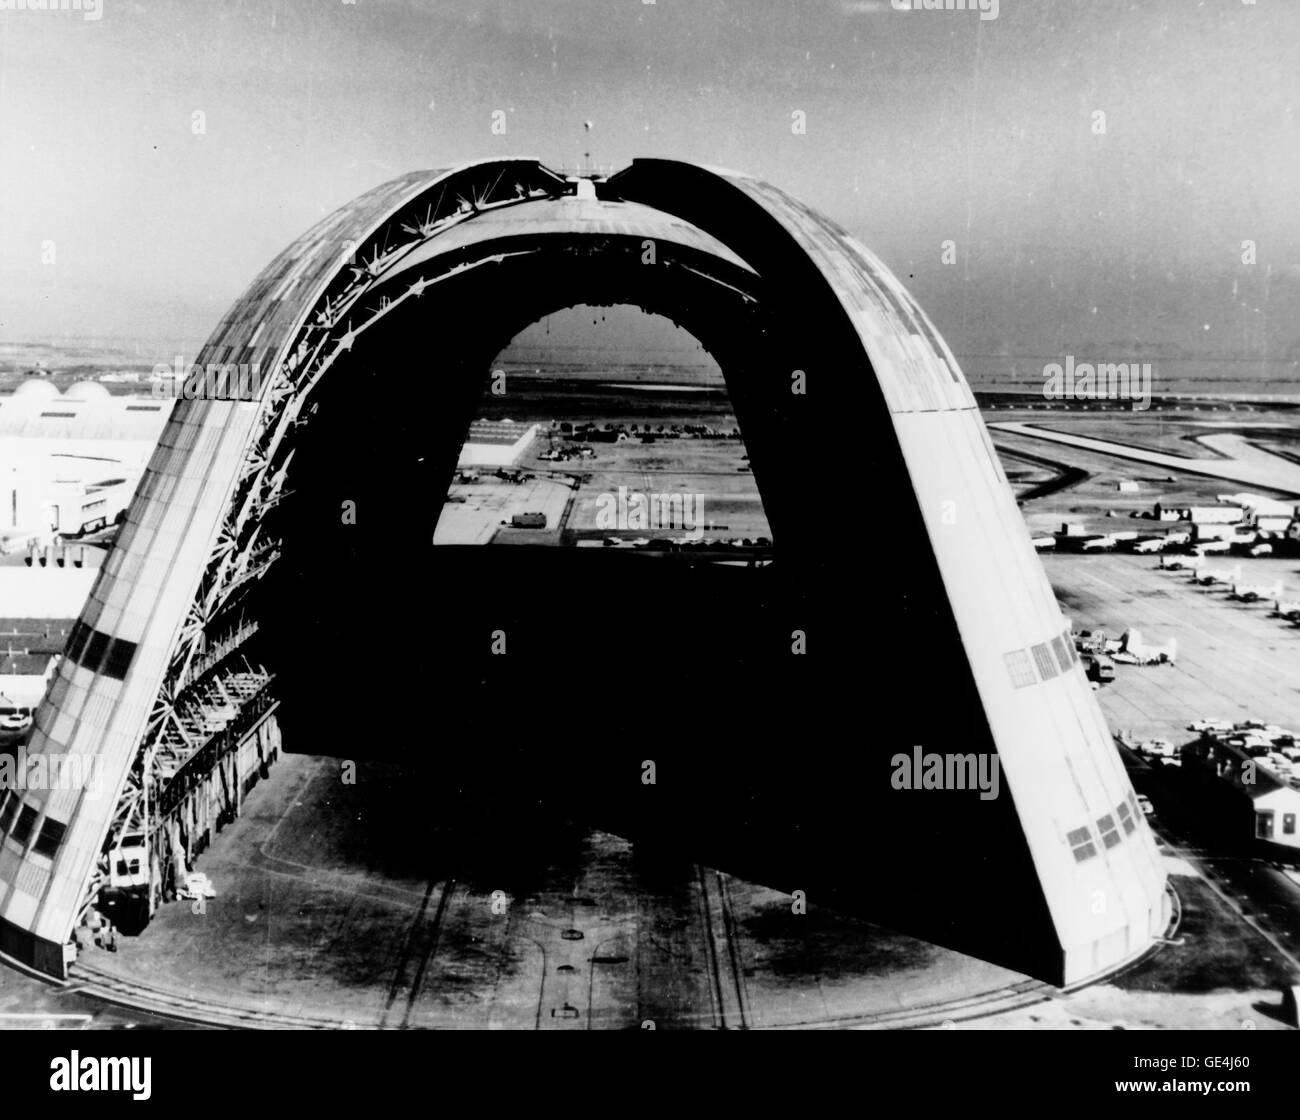 This is a view of the huge dirigible hangar with doors open at both ends at the NASA Ames Reserach Center, Moffett - Stock Image